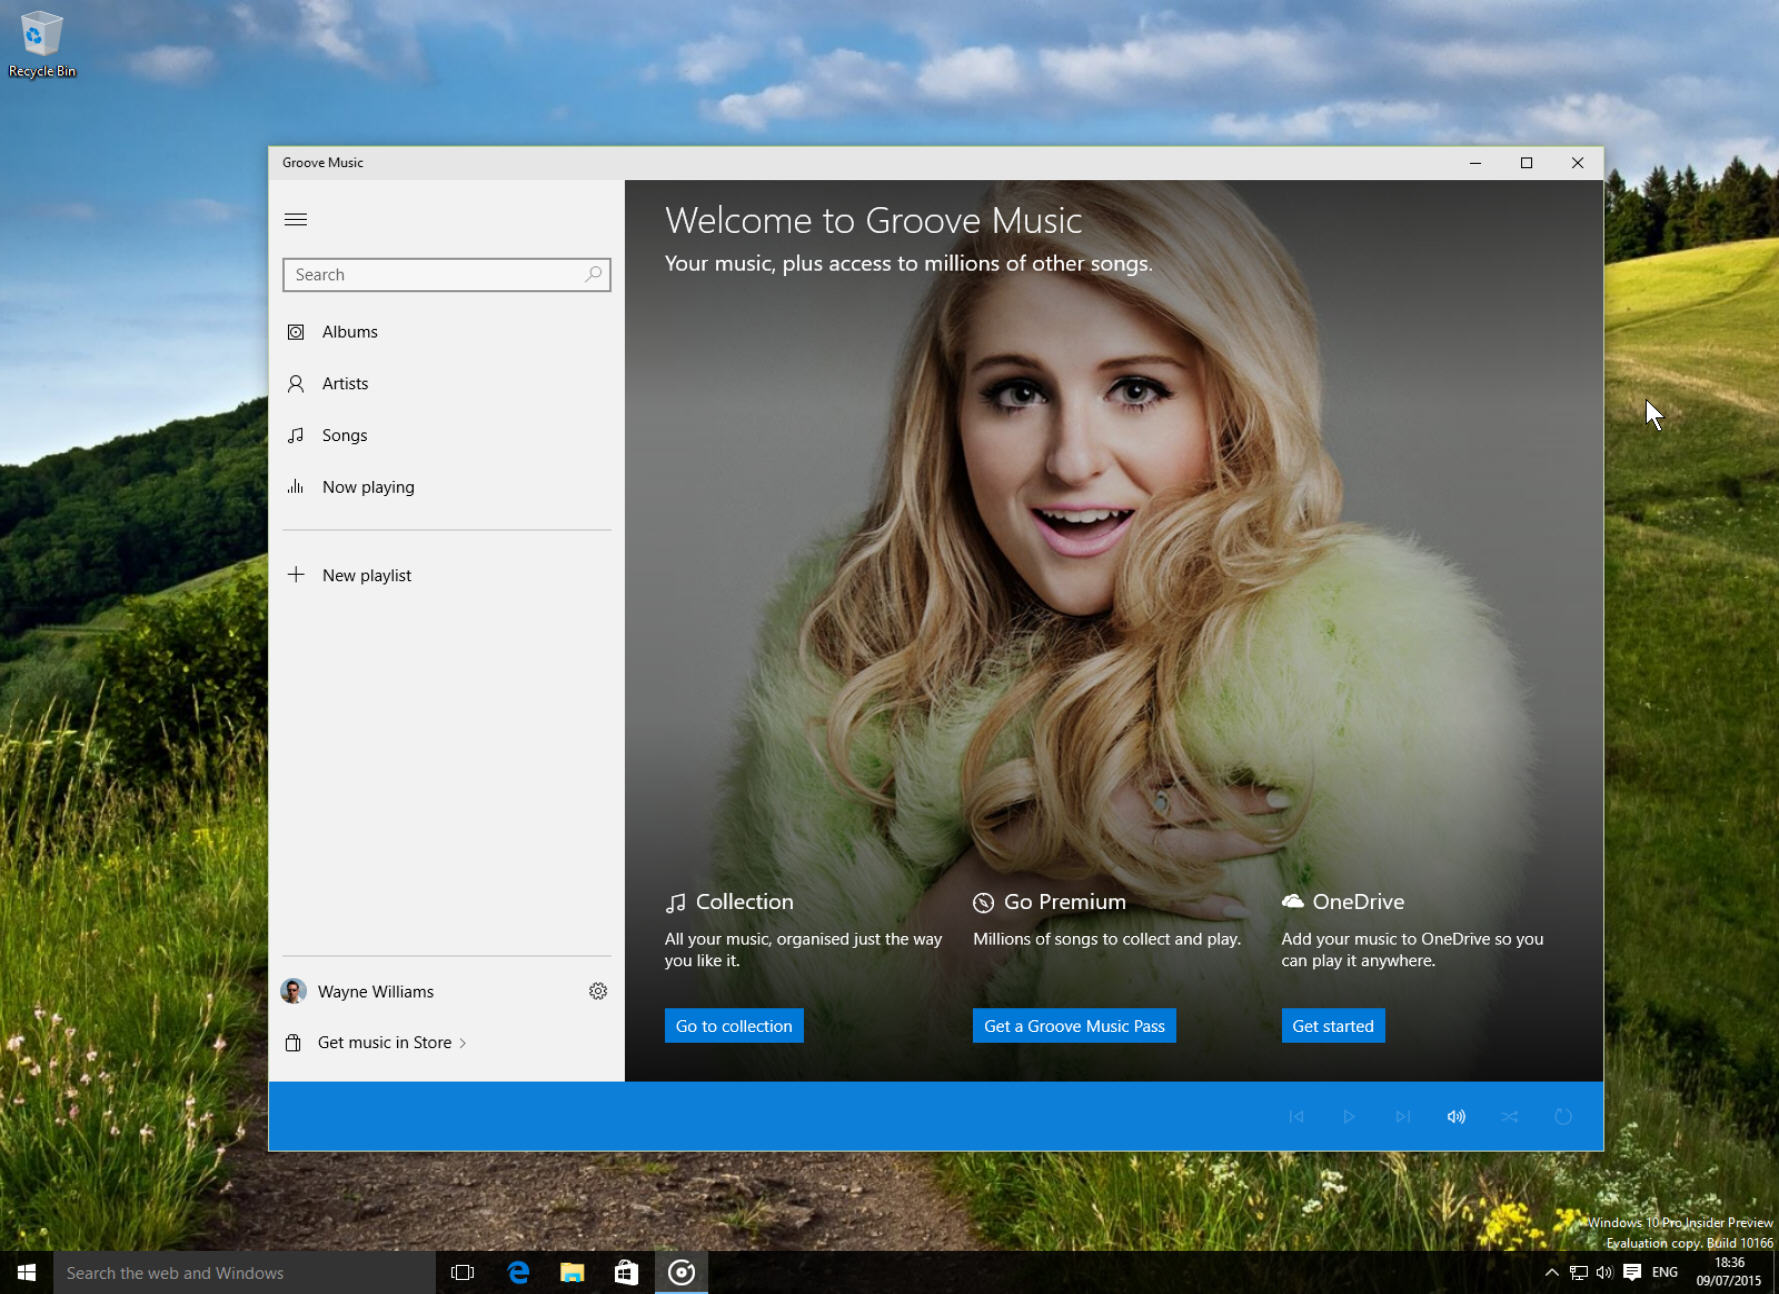 Windows 10 Insider Preview Build 10166 now available on the Fast ring